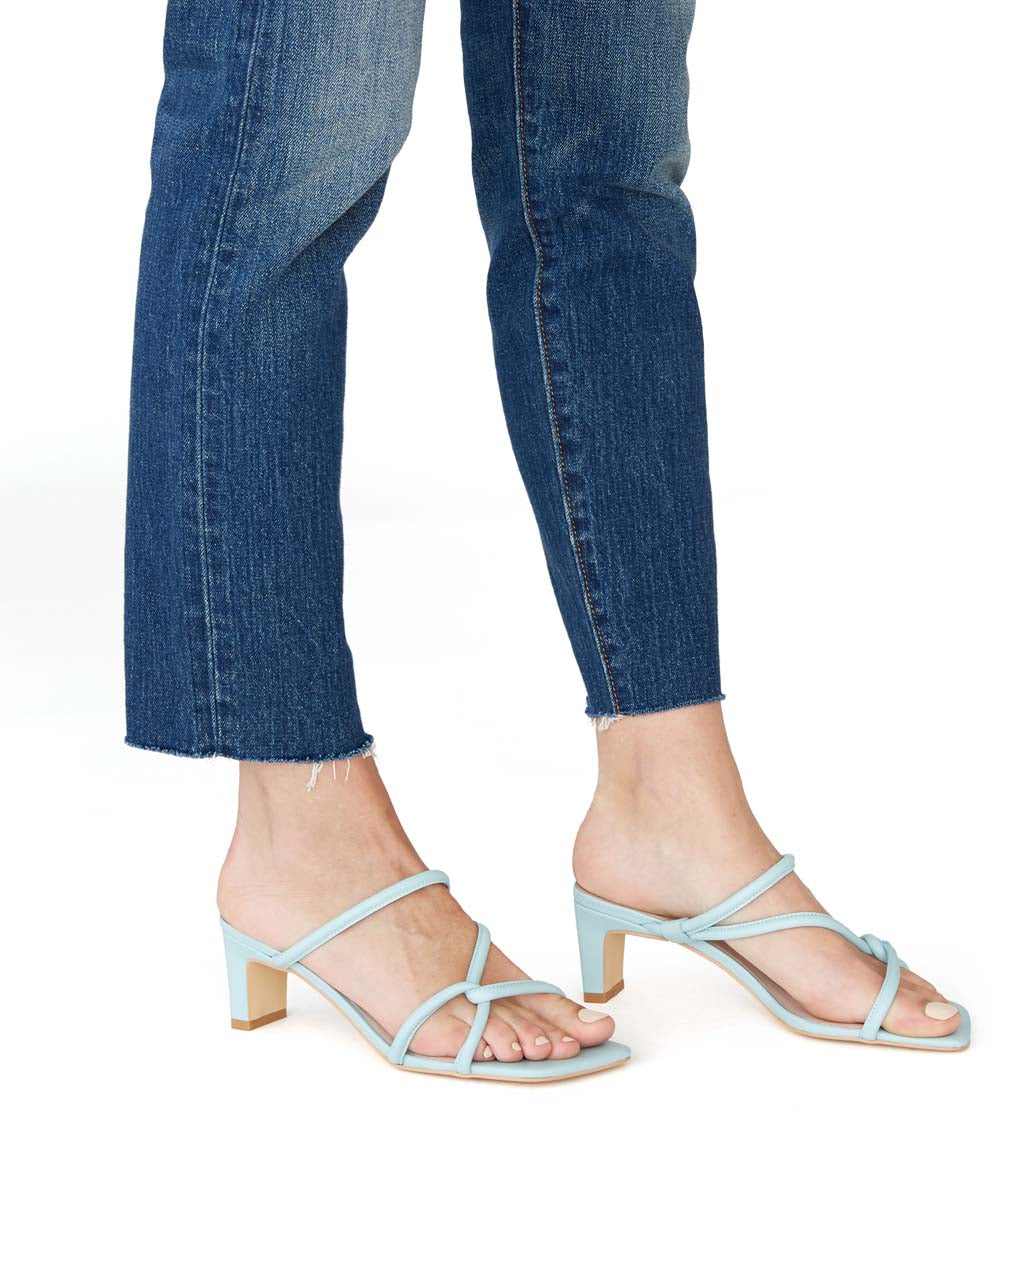 side view of model wearing baby blue backless sandals with heels